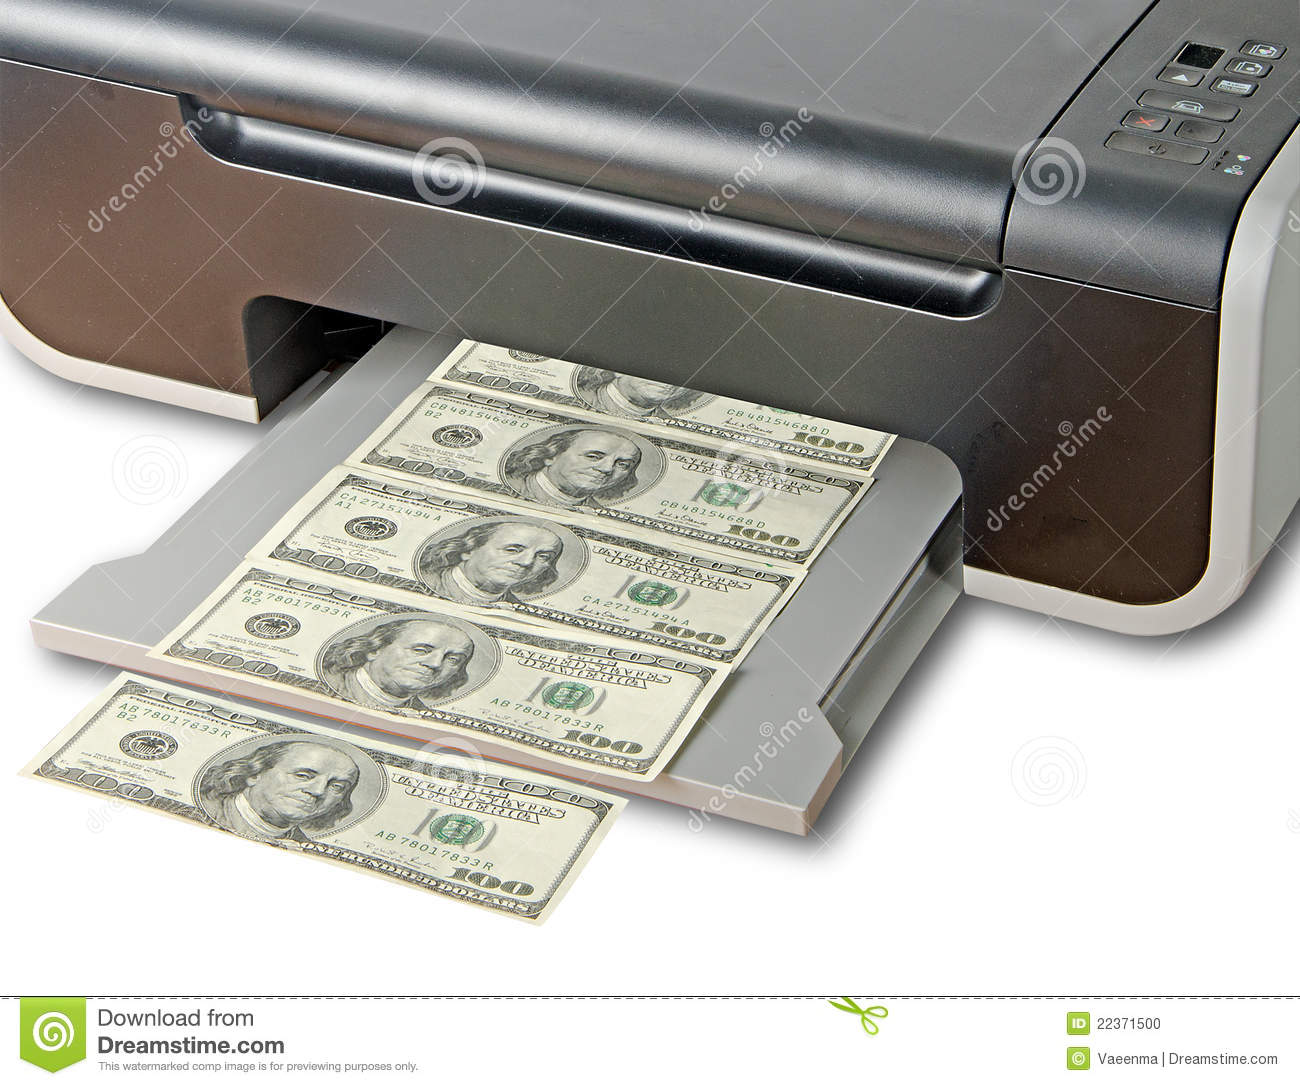 Multi Printing Money Fake Of - 22371500 Photo Stock Dollar Printer Image